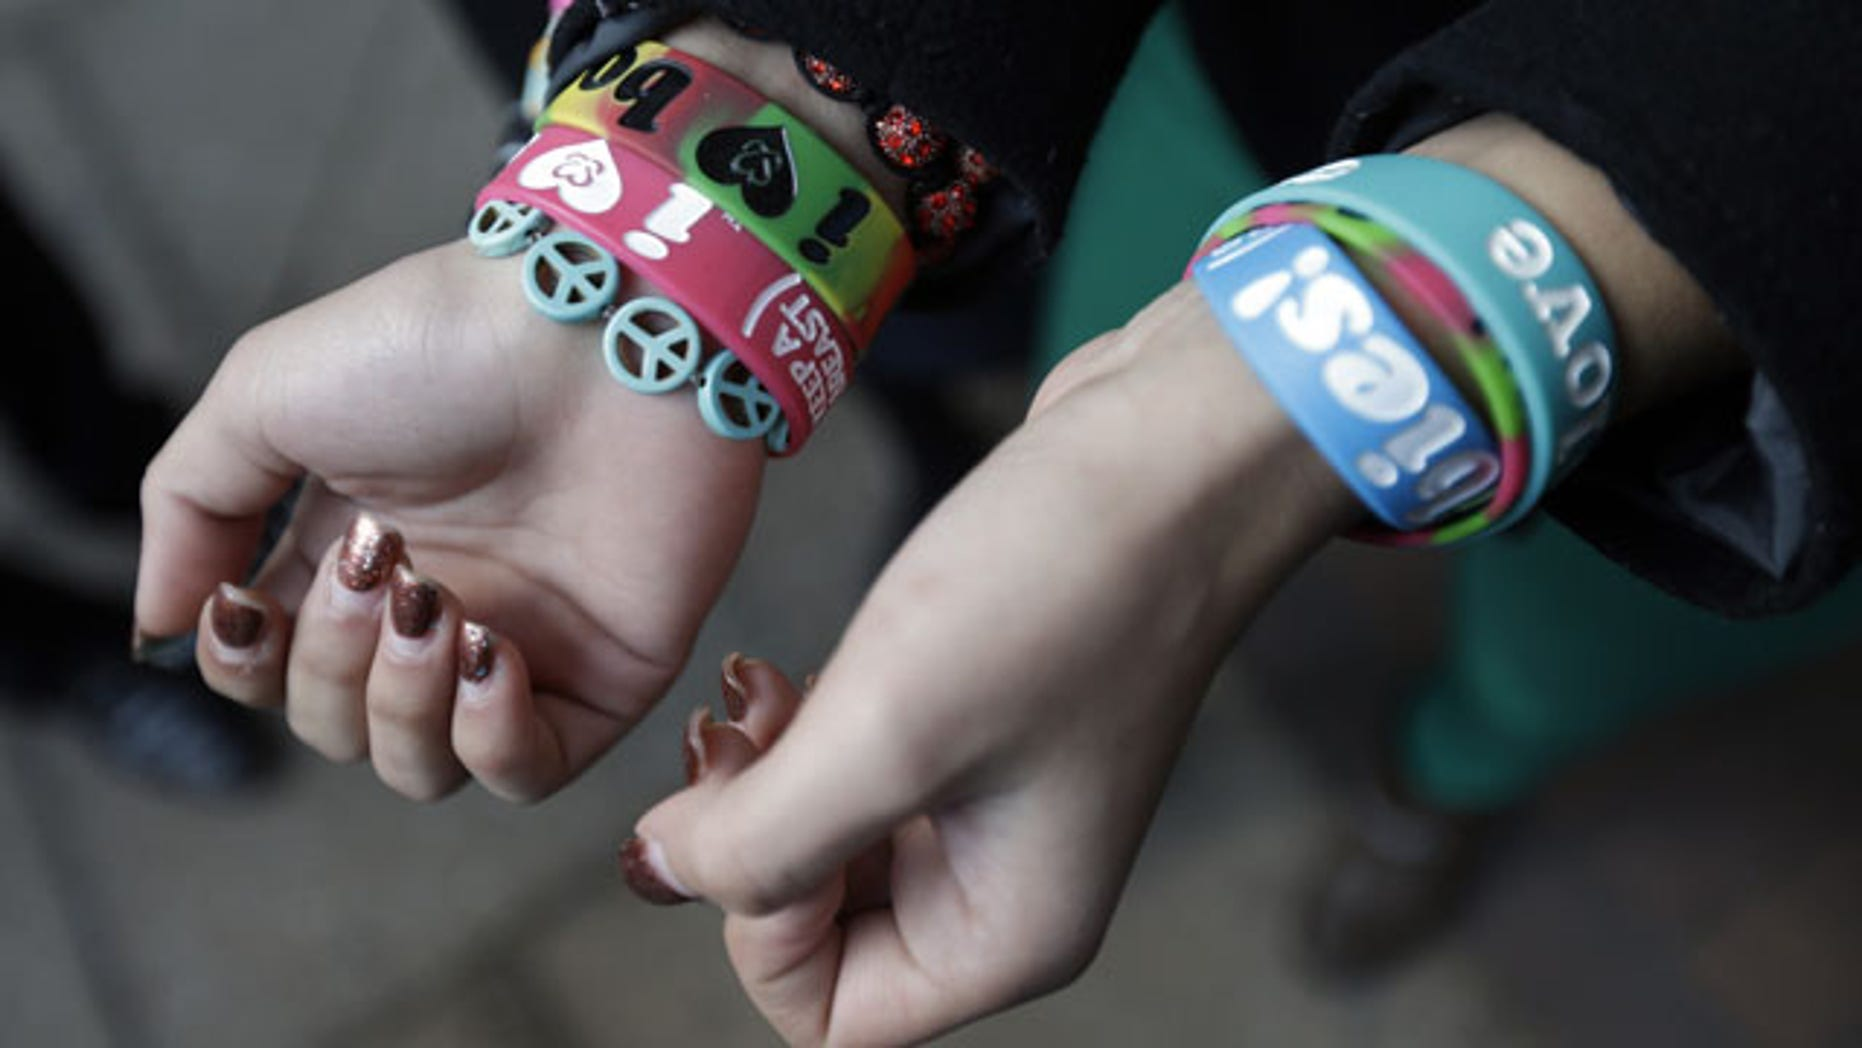 """FILE - In this Feb. 20, 2013 file photo, Easton Area School District students Brianna Hawk, 15, left, and Kayla Martinez, 14, display their """"I (heart) Boobies!"""" bracelets for photographers outside the U.S. Courthouse in Philadelphia. (AP Photo)"""